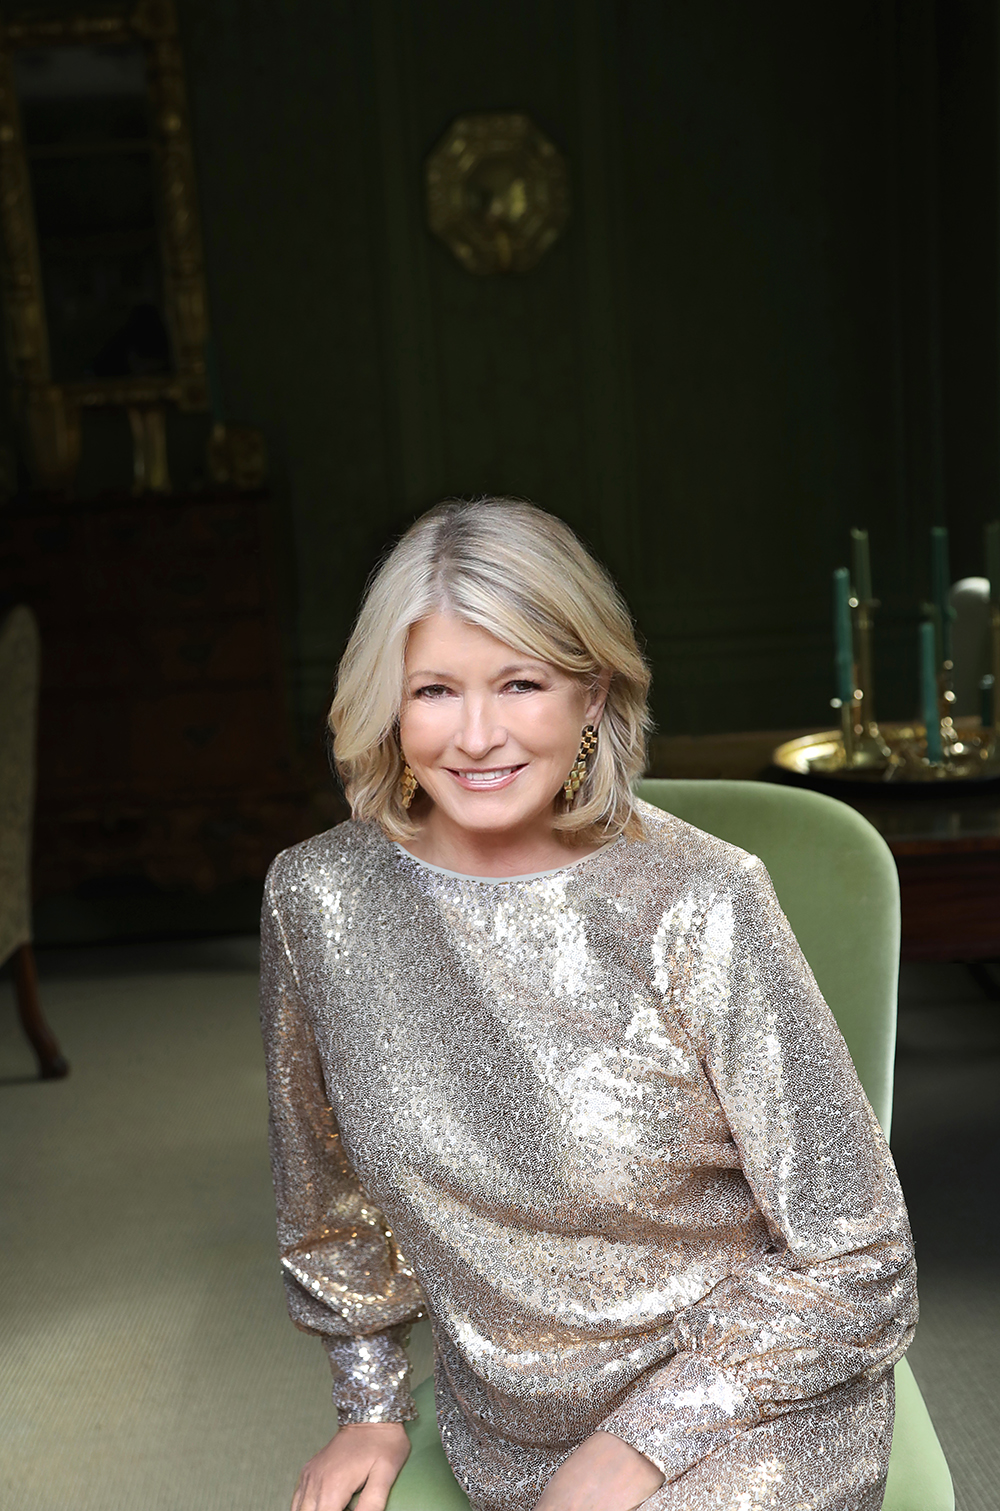 Martha Stewart in Sparkly Dress, Headshot